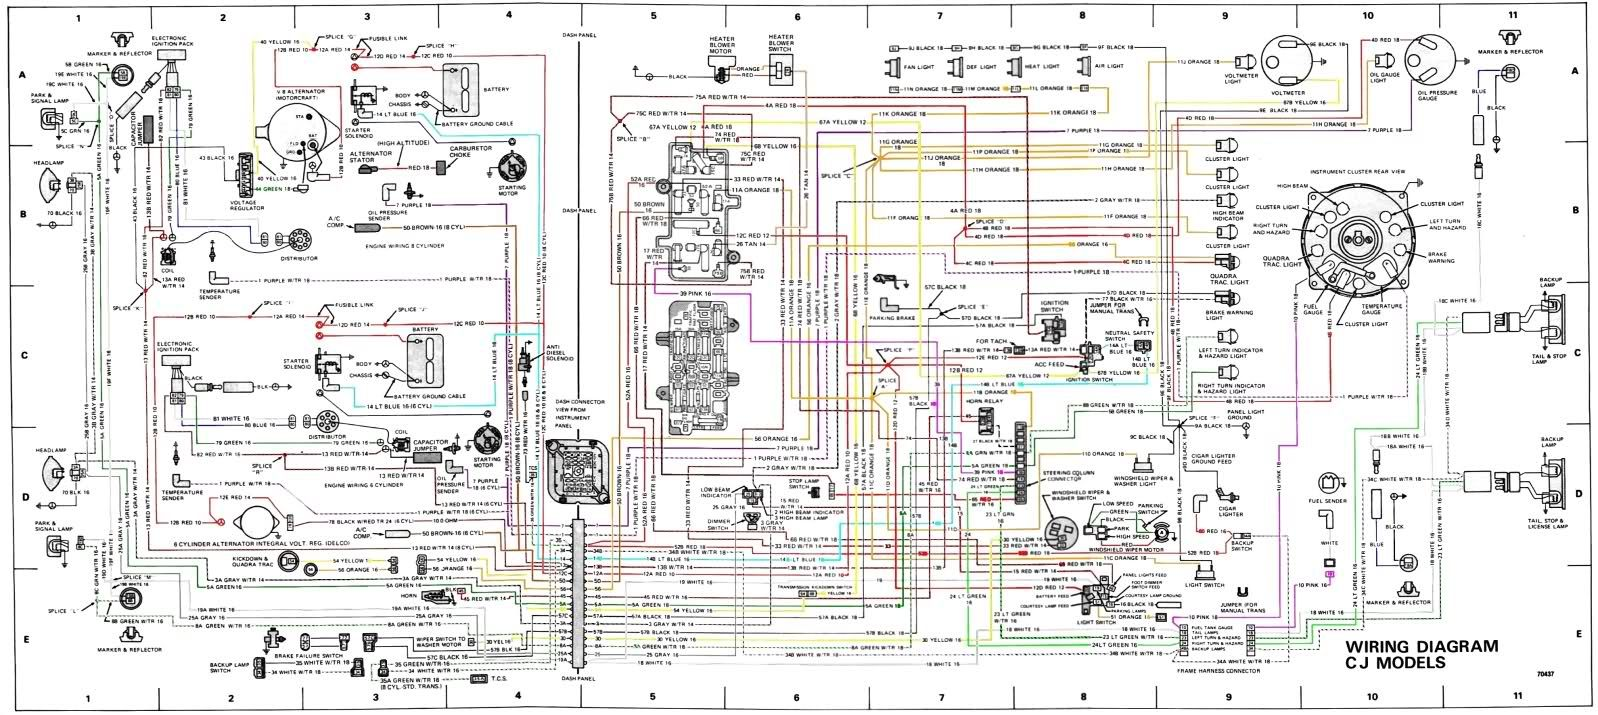 Cj7 Wire Diagram - Wiring Diagram 500 Jeep Wiring Harness Color Diagram on jeep horn diagram, jeep headlight diagram, jeep tj instrument cluster wiring diagram, ignition switch diagram, jeep cj7 wiring-diagram, 1990 jeep wiring diagram, 1973 jeep wiring diagram, jeep patriot hid headlights, jeep to chevy wiring harness, jeep exhaust system diagram, jeep electrical diagram, 93 jeep yj wiring diagram, jeep distributor parts diagram, jeep pulley diagram, 1965 jeep wiring diagram, jeep hoses diagram, jeep wiring harness connector bulk, jeep wiring harness problem, jeep fuel tank diagram, 99 jeep tj wiring diagram,